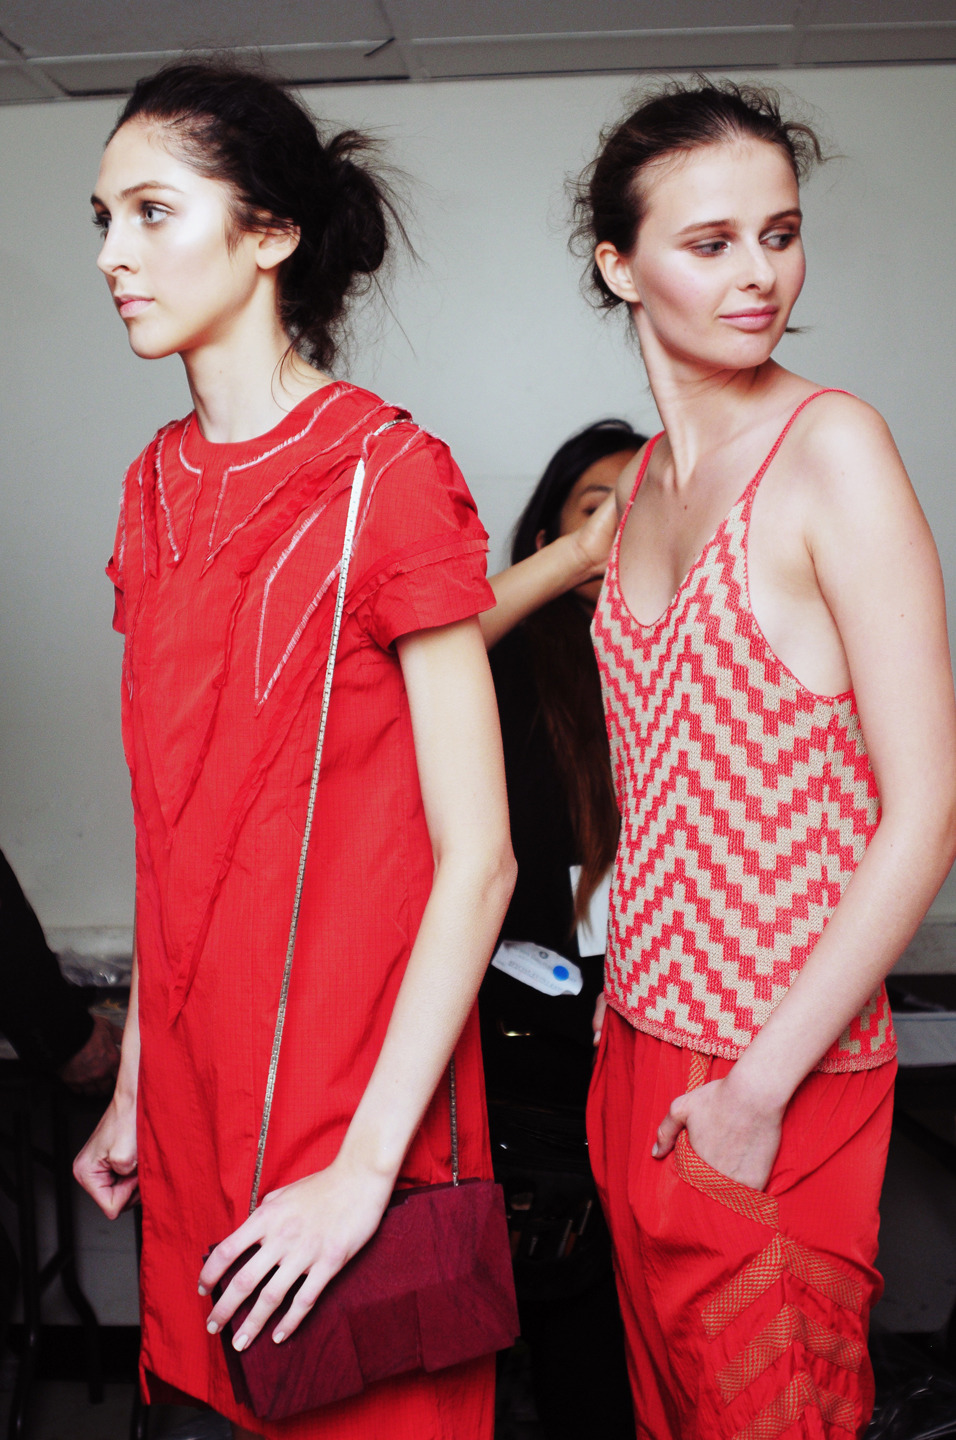 Backstage at the Jen Kao SS13 runway show